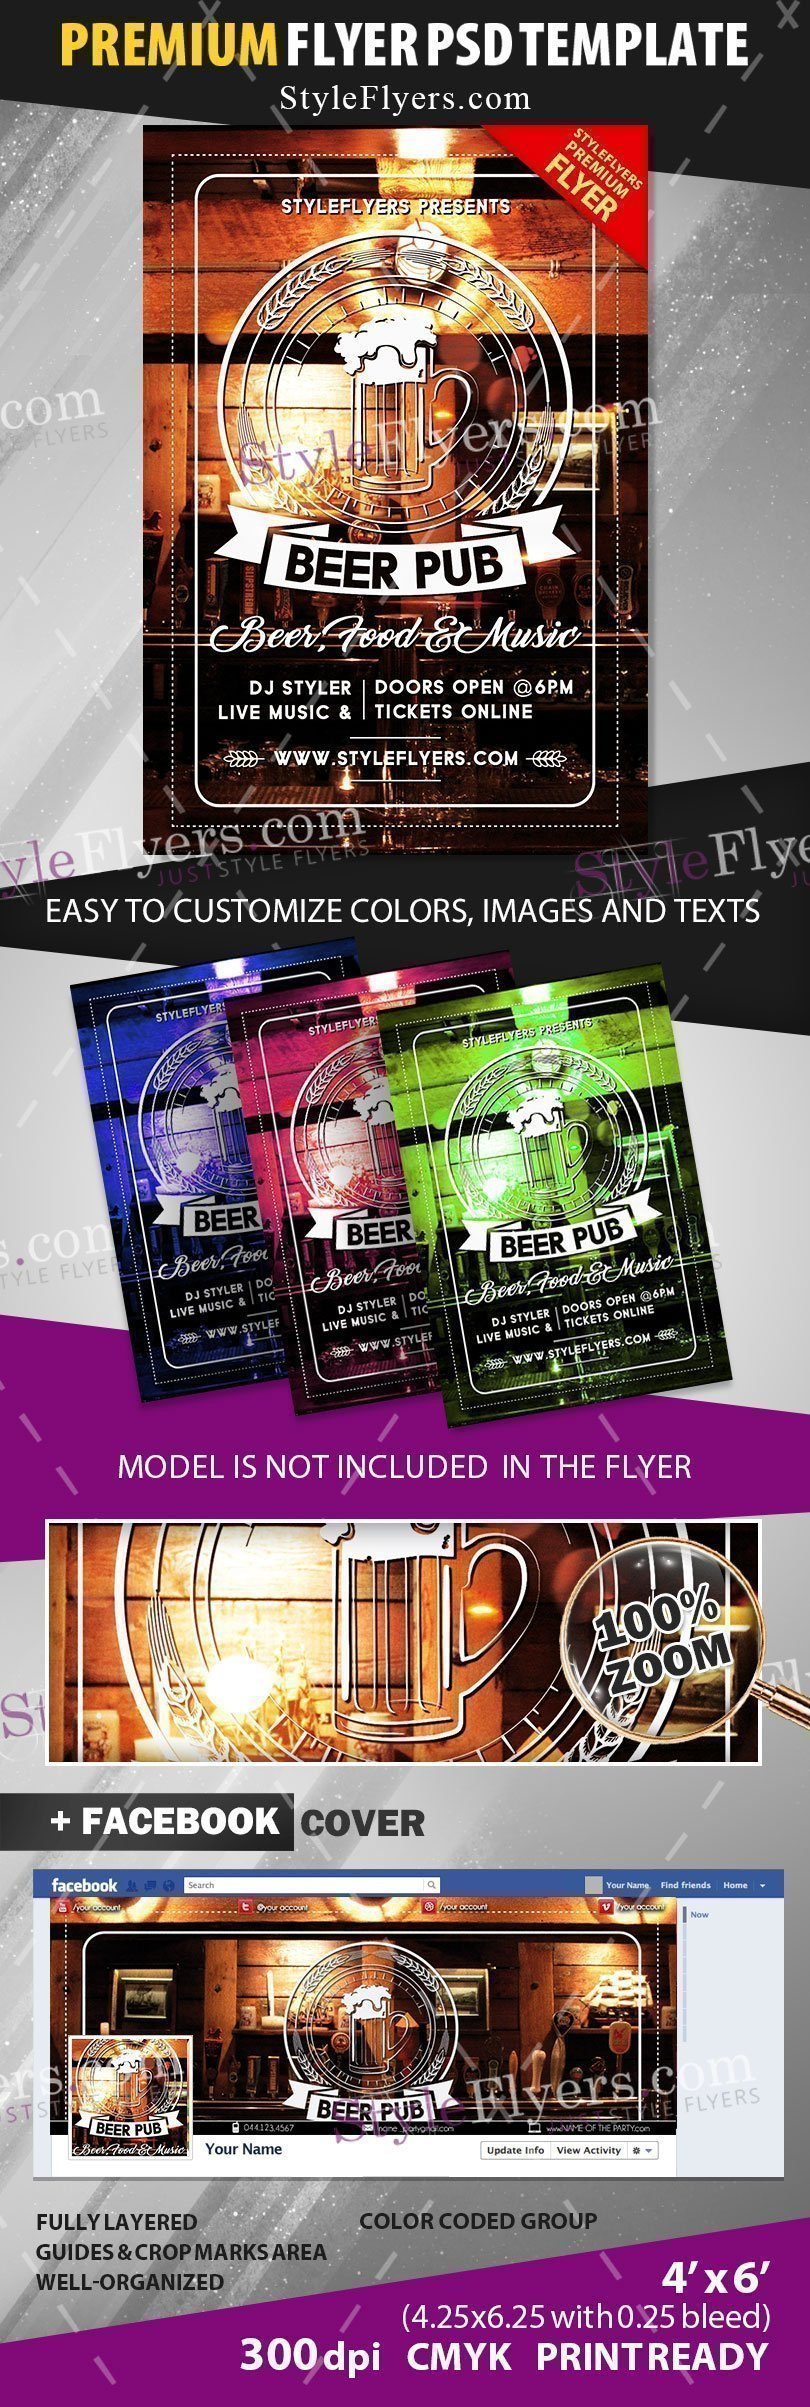 preview_beer_pub_Flyer_premium_template